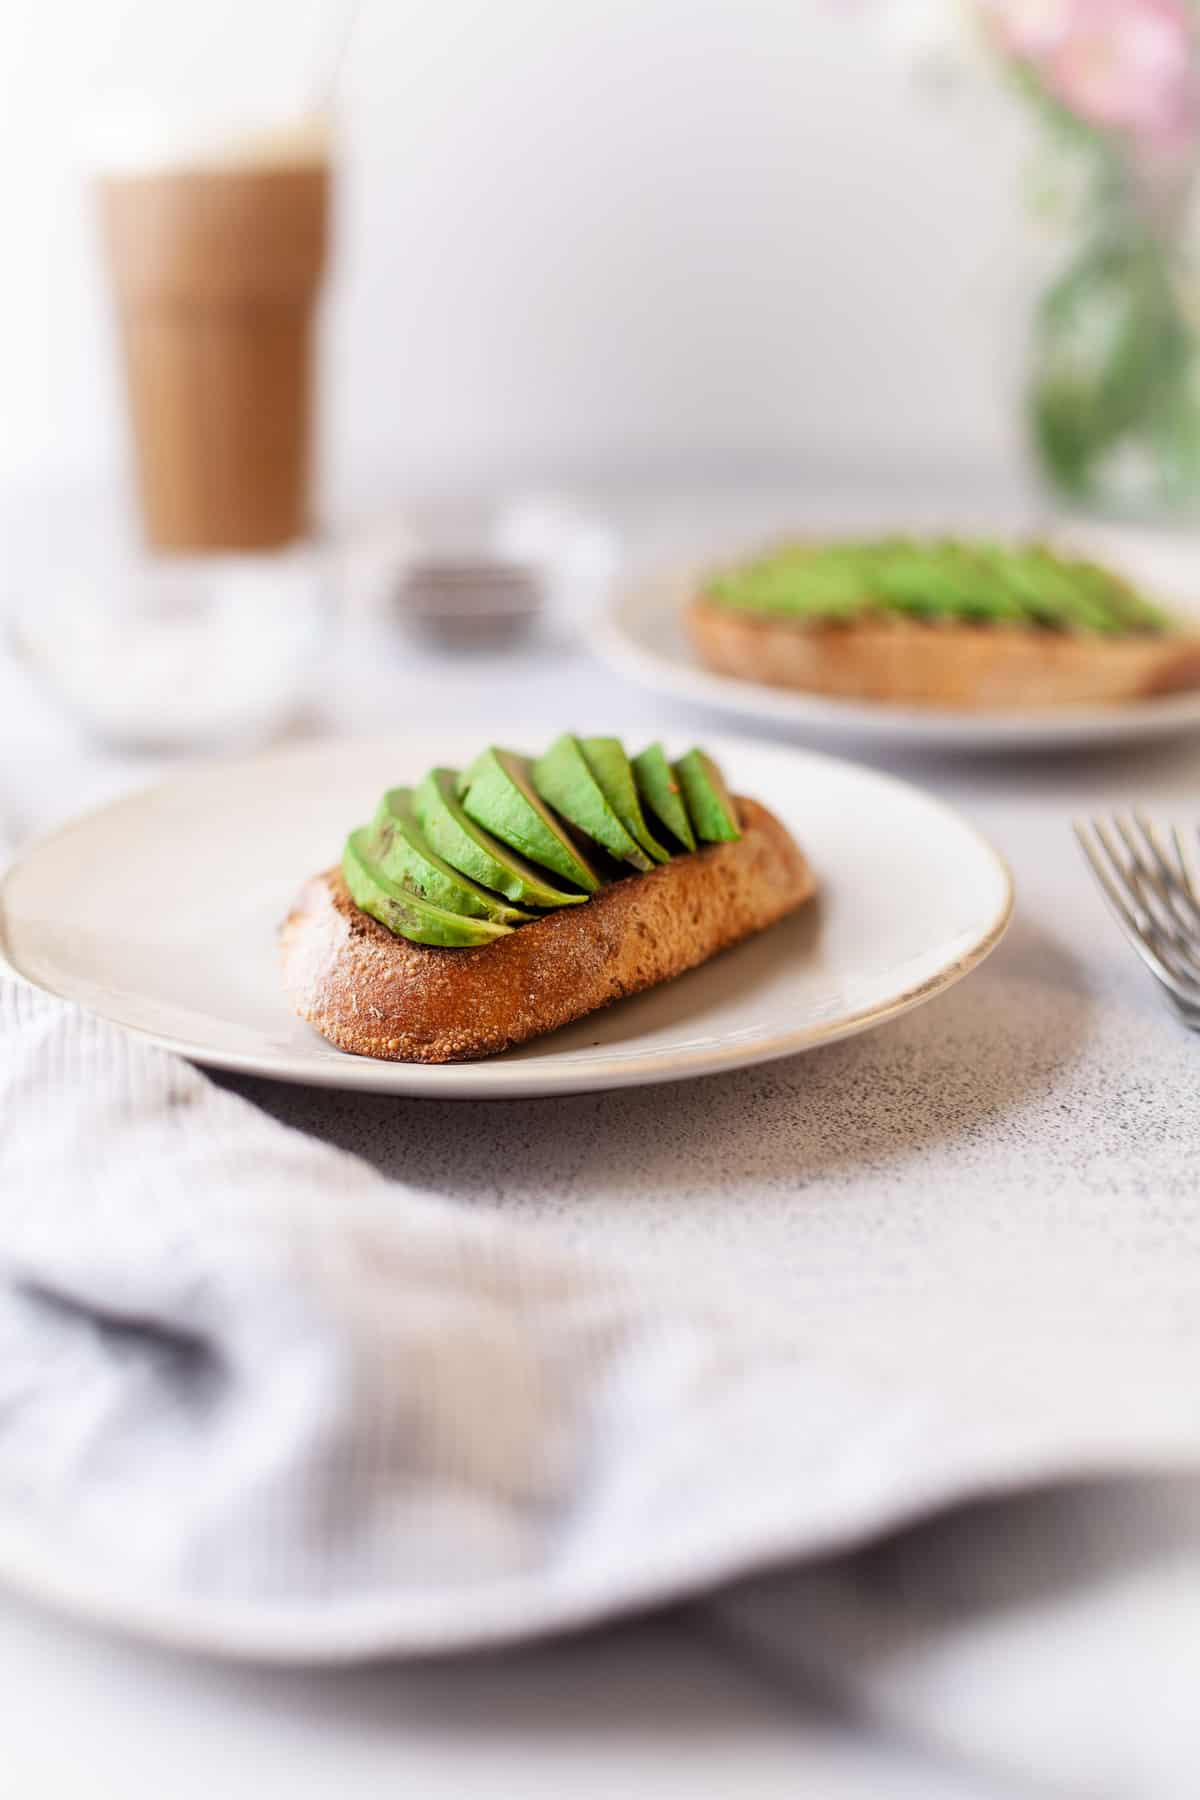 Slices of avocado on top of toast on a white plate.